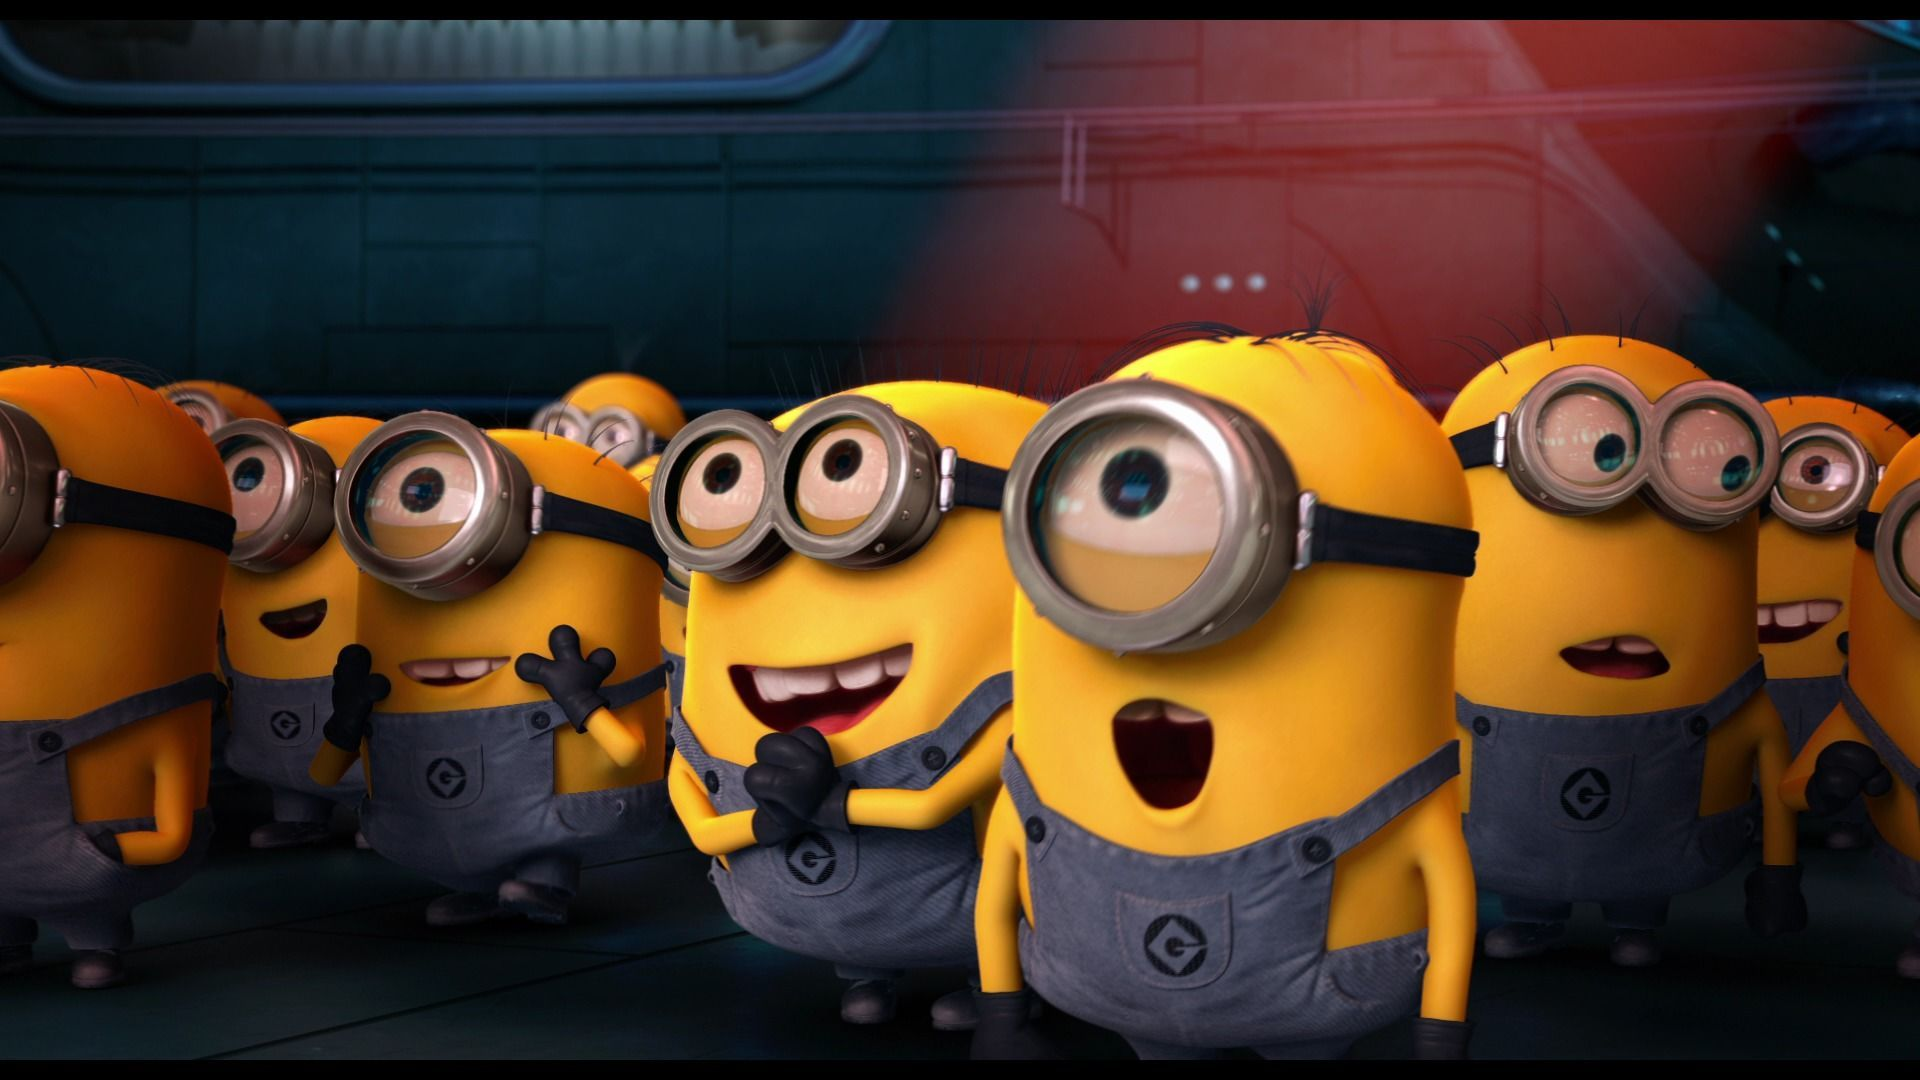 Minion Wallpaper Images Design HD Resolution 215 Backgrounds